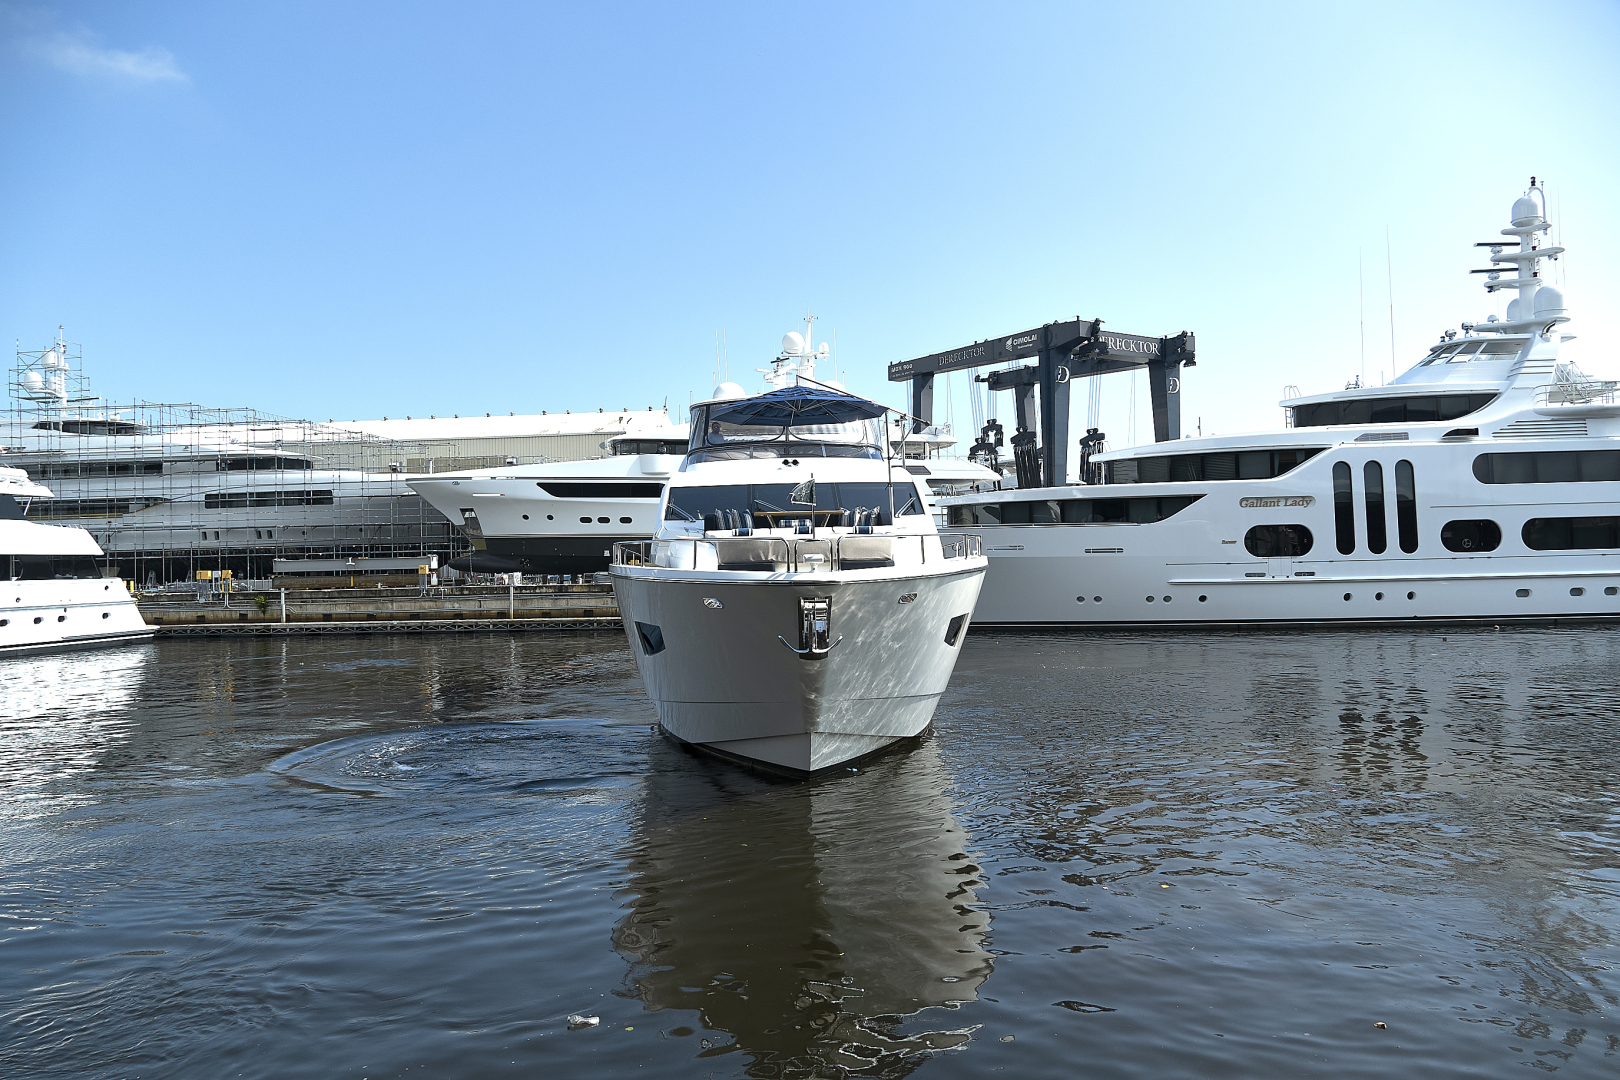 Sunseeker-86 Yacht 2019-Its Noon Somewhere Fort Lauderdale-Florida-United States-1556646 | Thumbnail